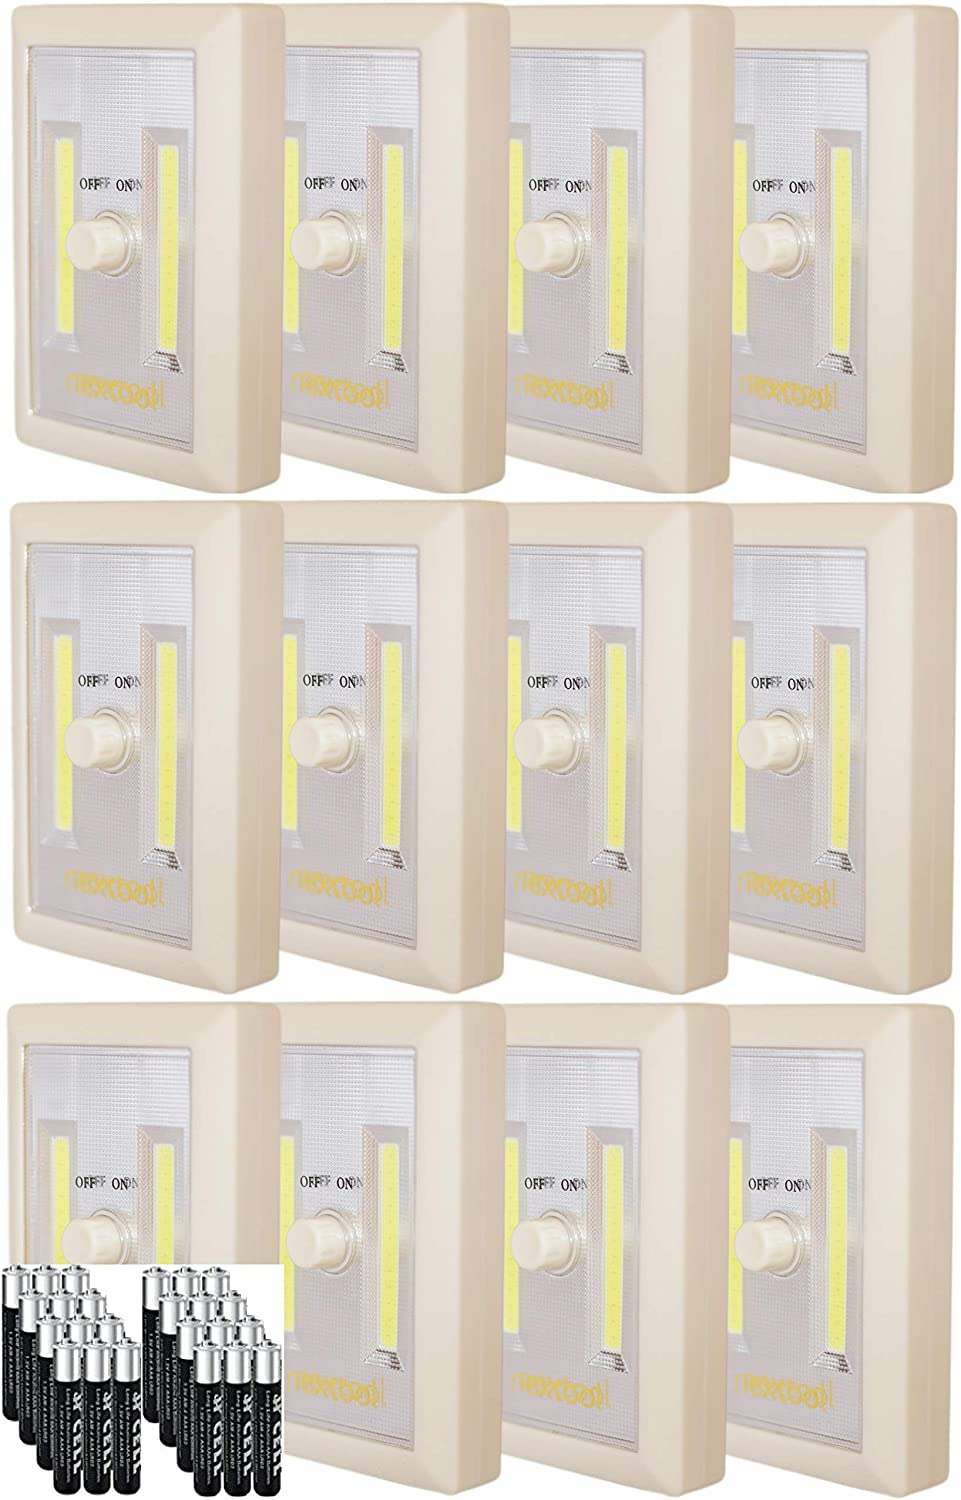 New Version Battery Operated LED Night Lights Tap Light Adjustable Brightness White 3 AAA Batteries /& Adhesive Strips Included Dimmable AAA Battery Included COB LED Cordless Light Swtich